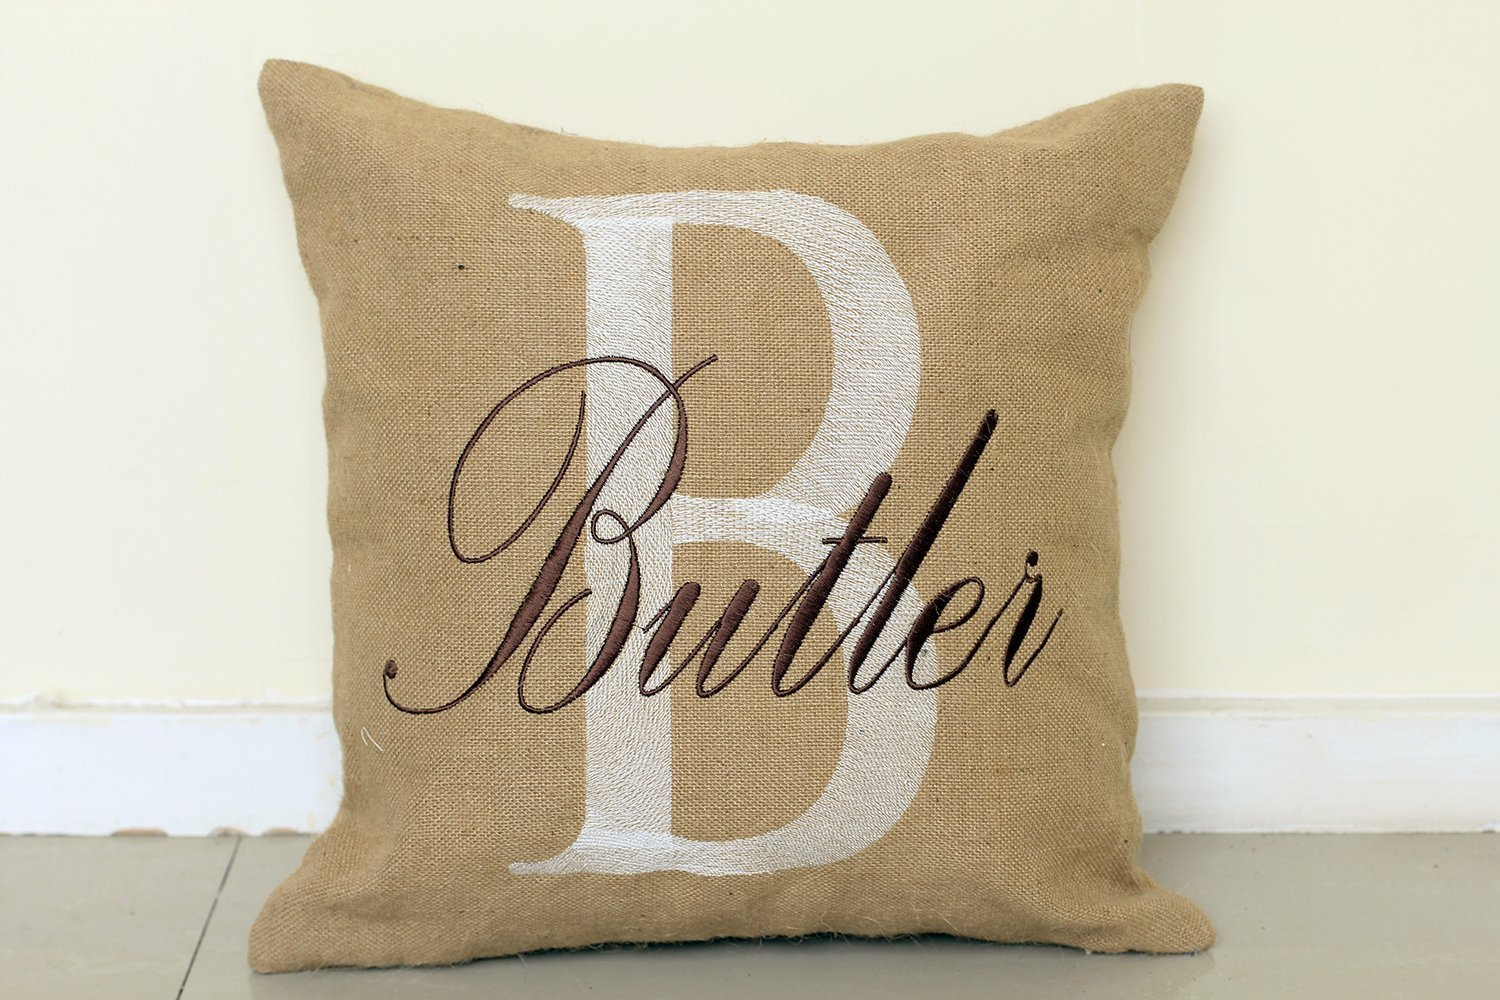 DecorHouzz Personalised Embroidered Burlap Pillow Cover Pillow Cases Decorative Pillow Custom Name Cushion Throw Pillow